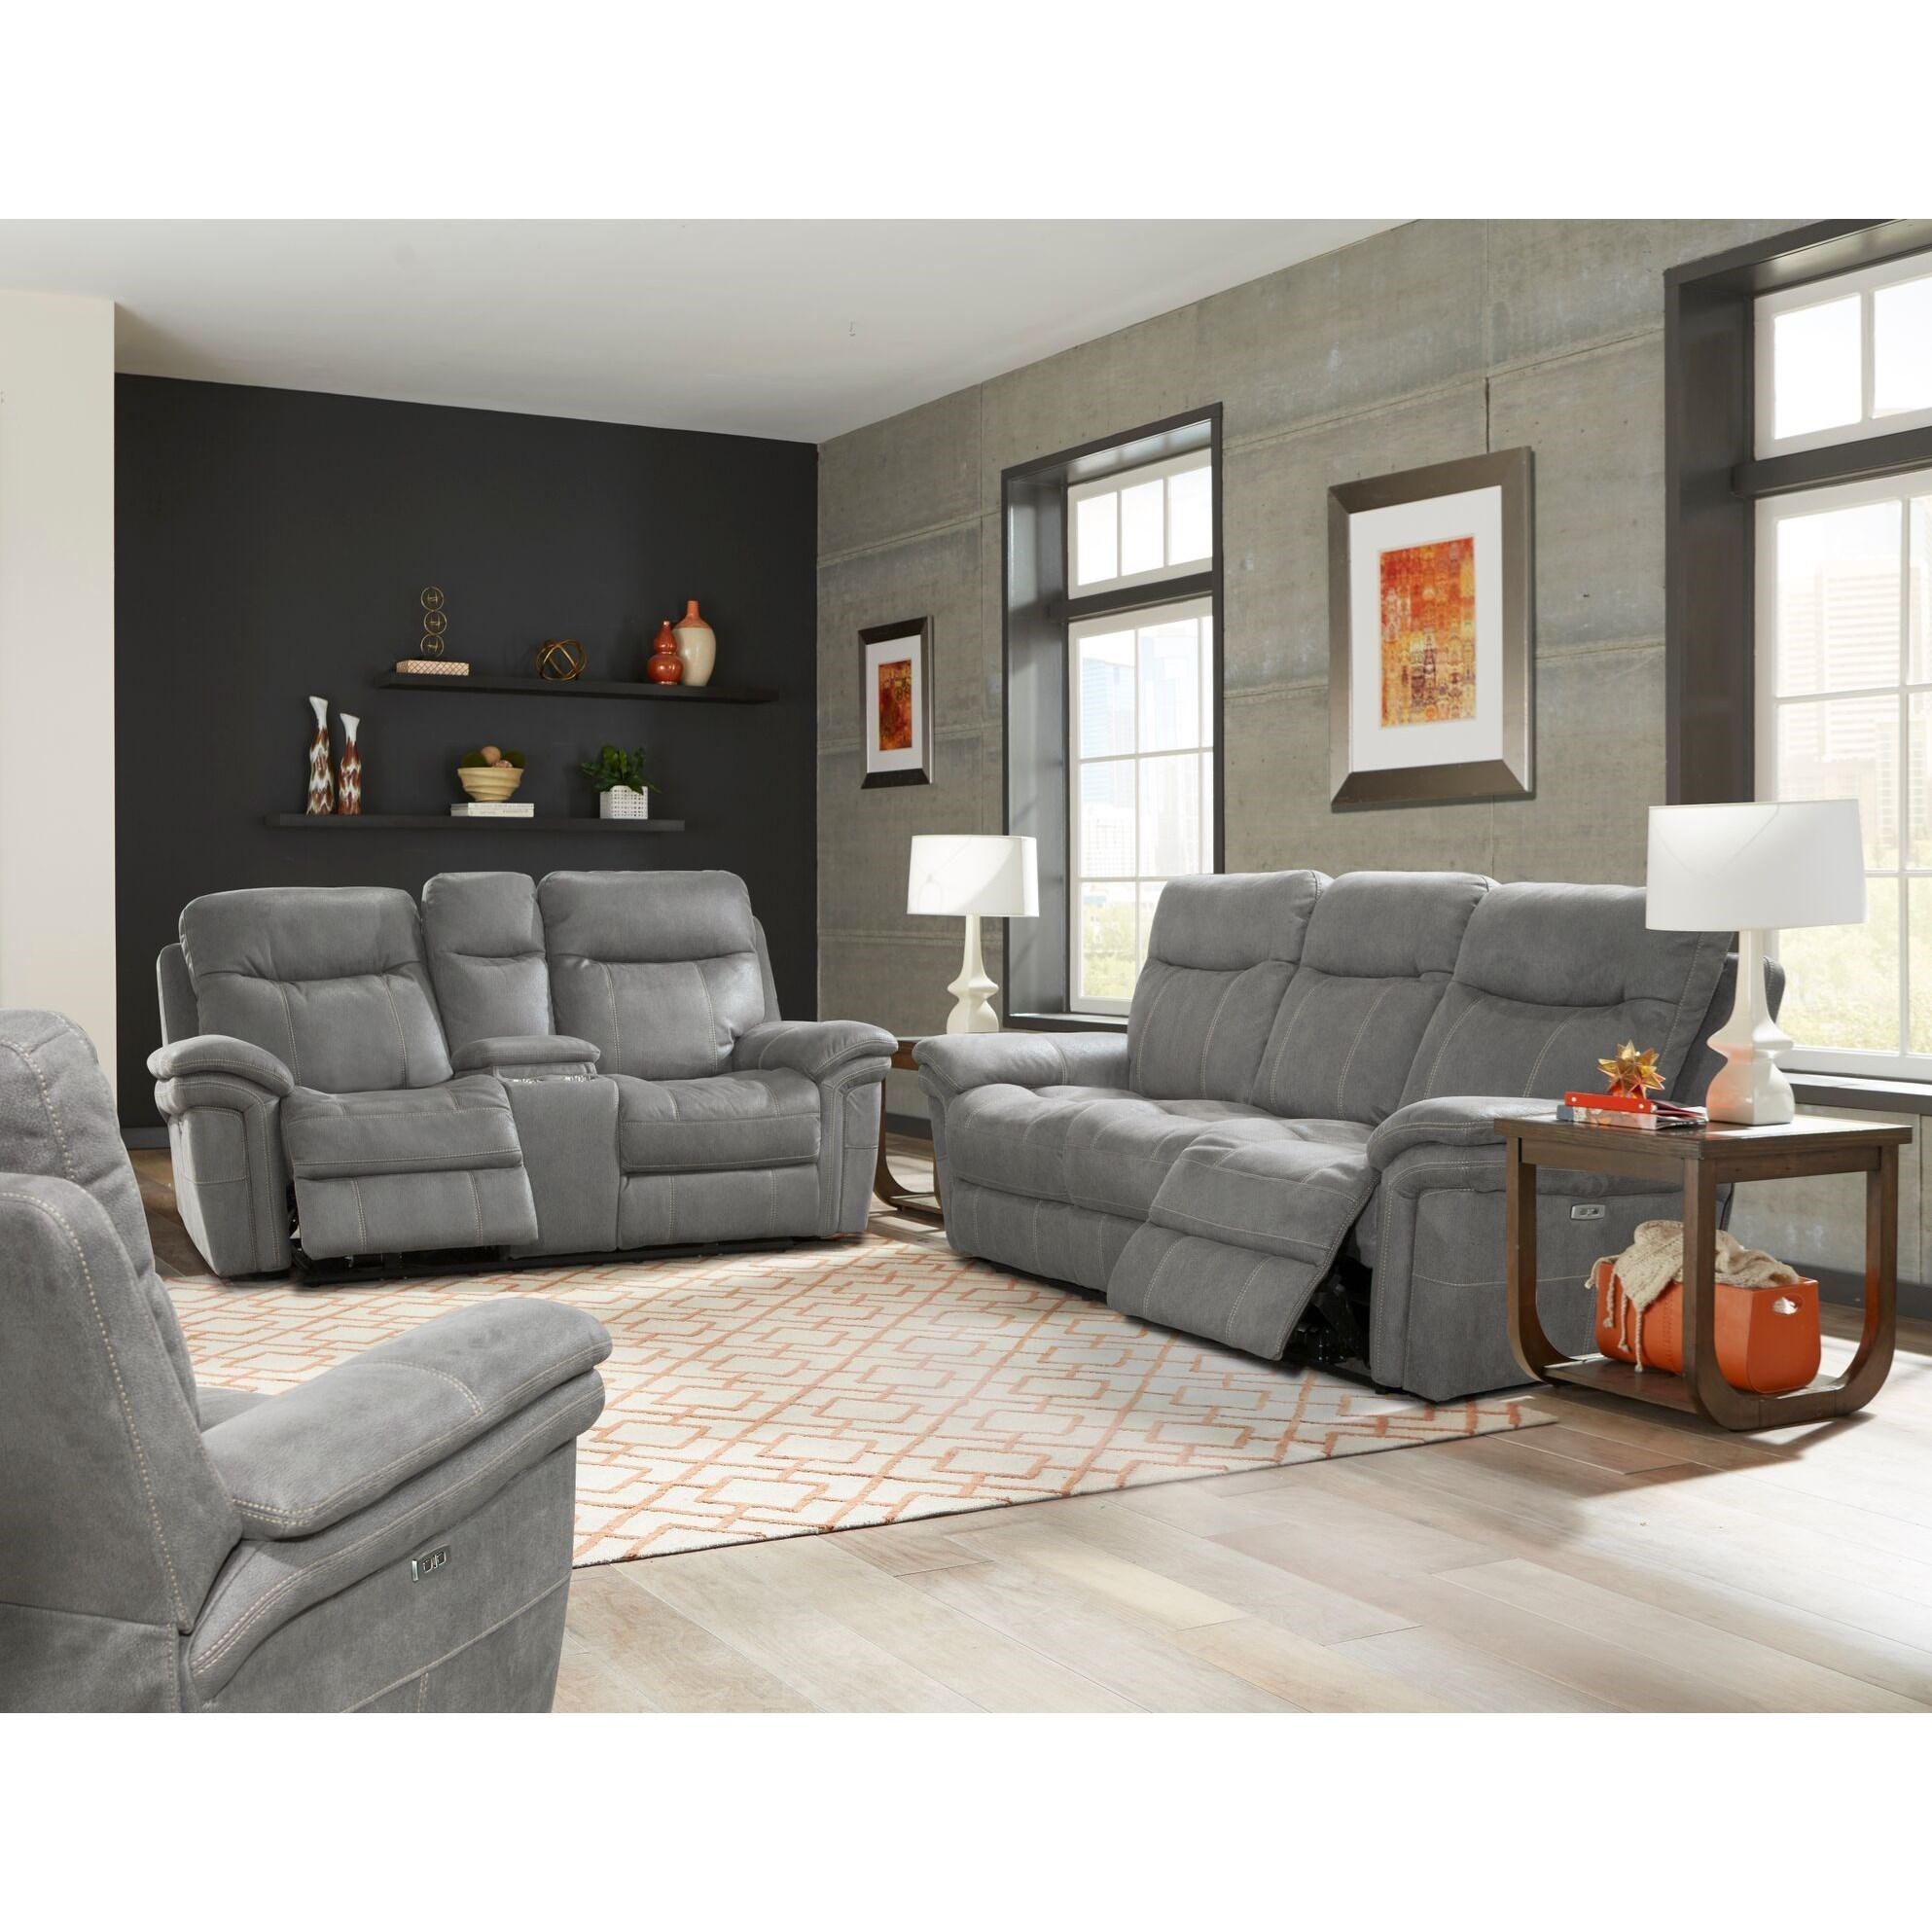 Mason Reclining Living Room Group by Parker Living at Dream Home Interiors